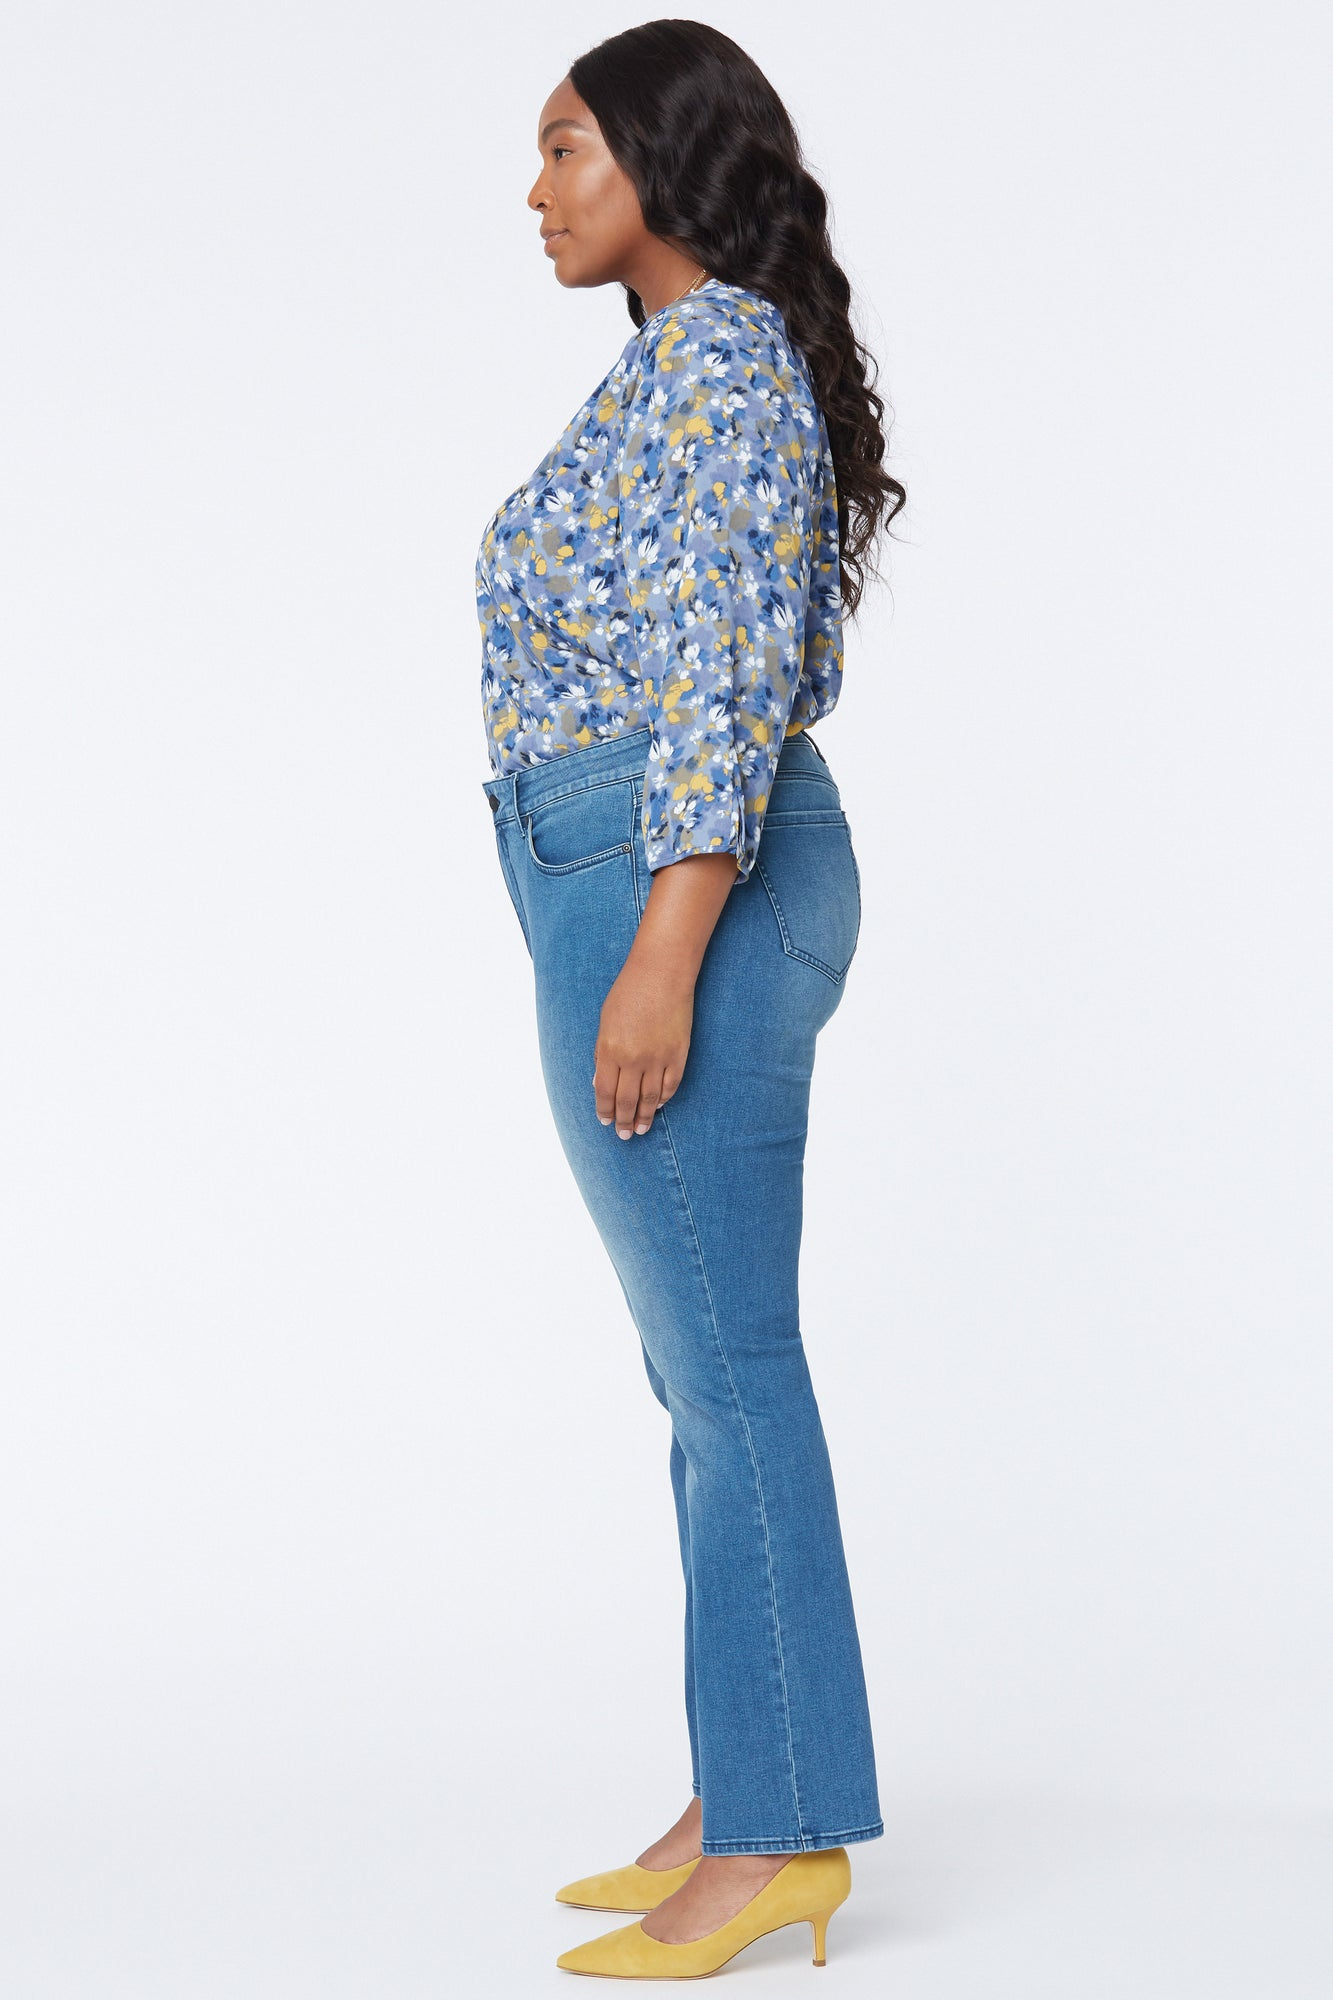 Marilyn Straight Jeans In Plus Size - ADMIRATION